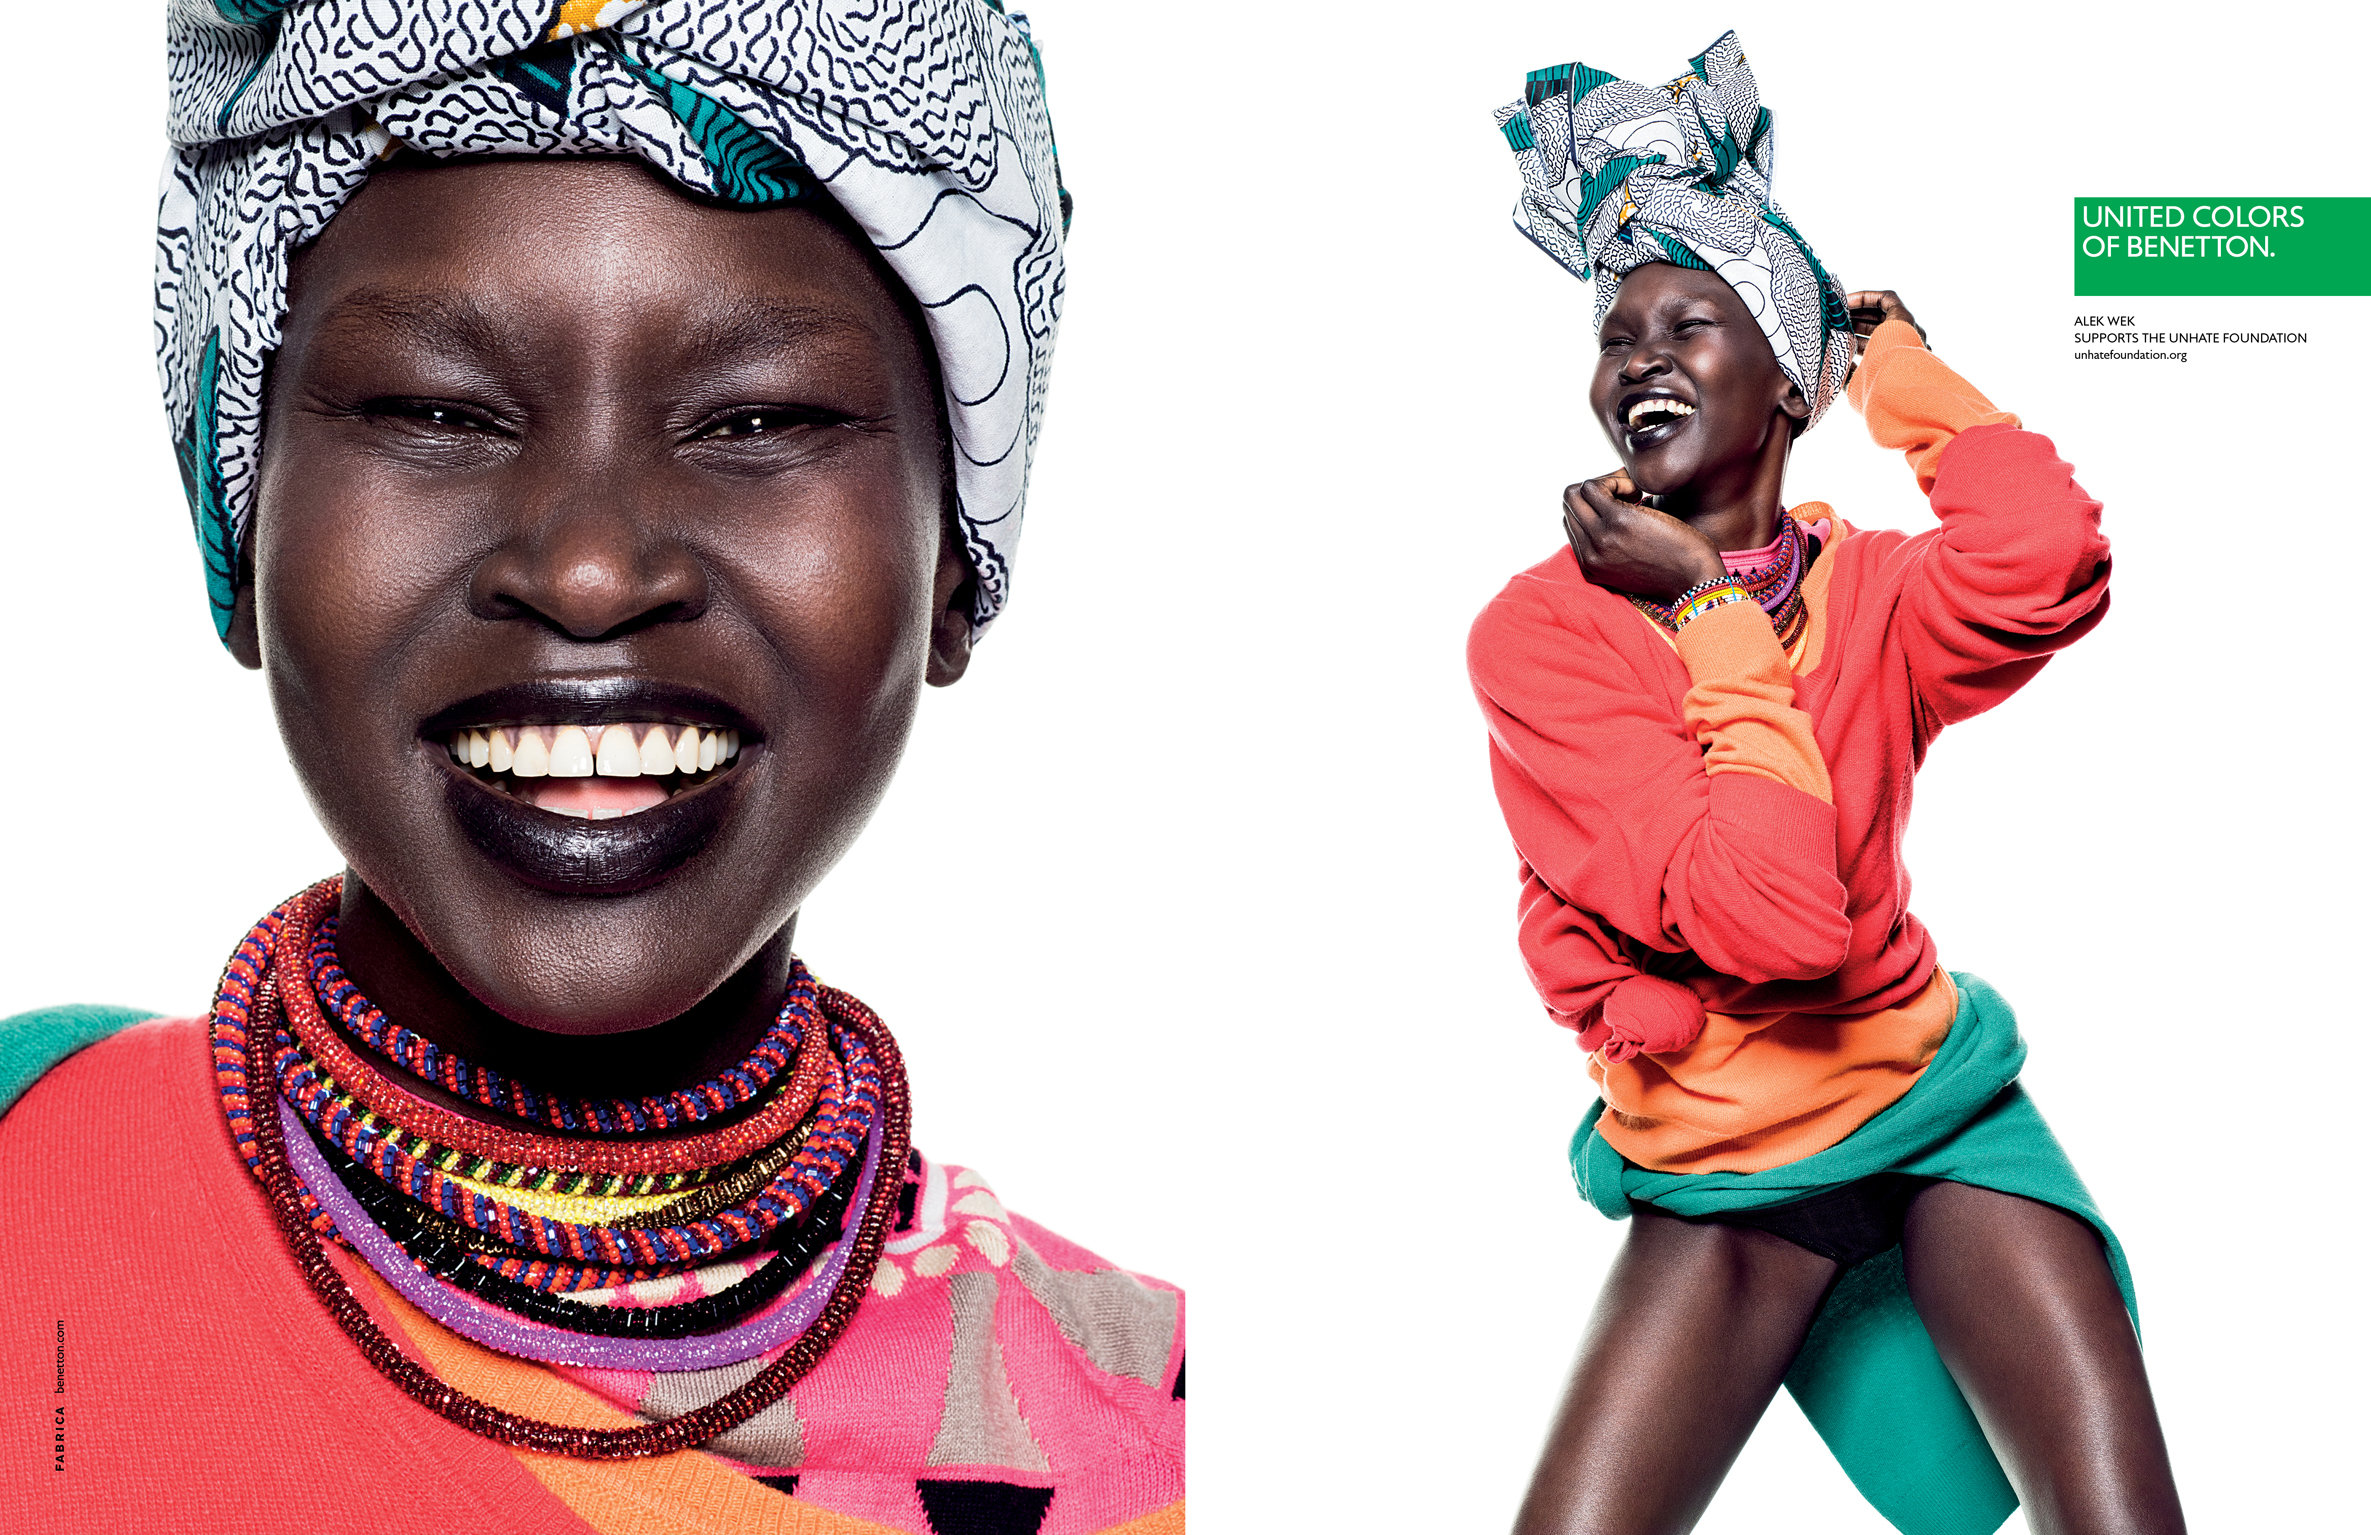 Bringing the world to life through the power of colour ...